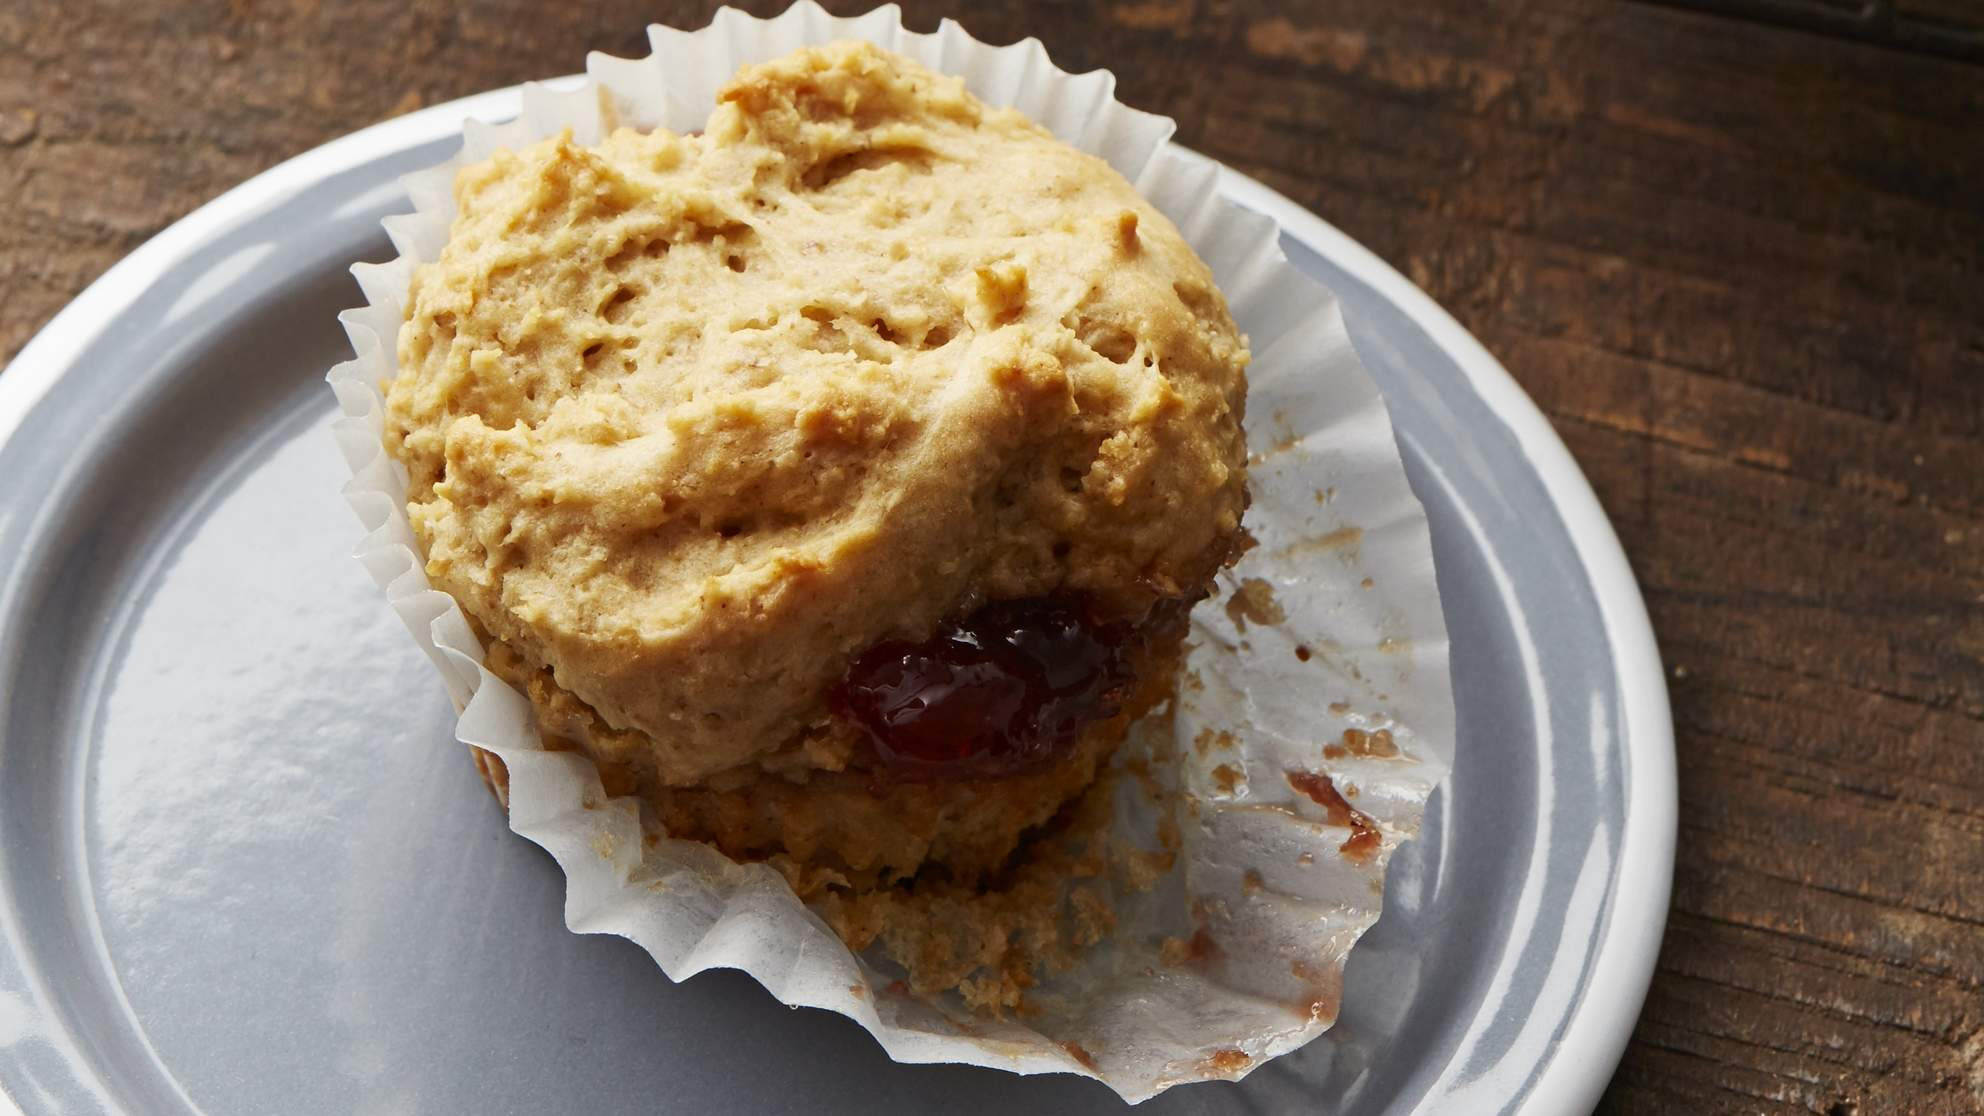 complete-month-peanut-butter-jelly-muffin